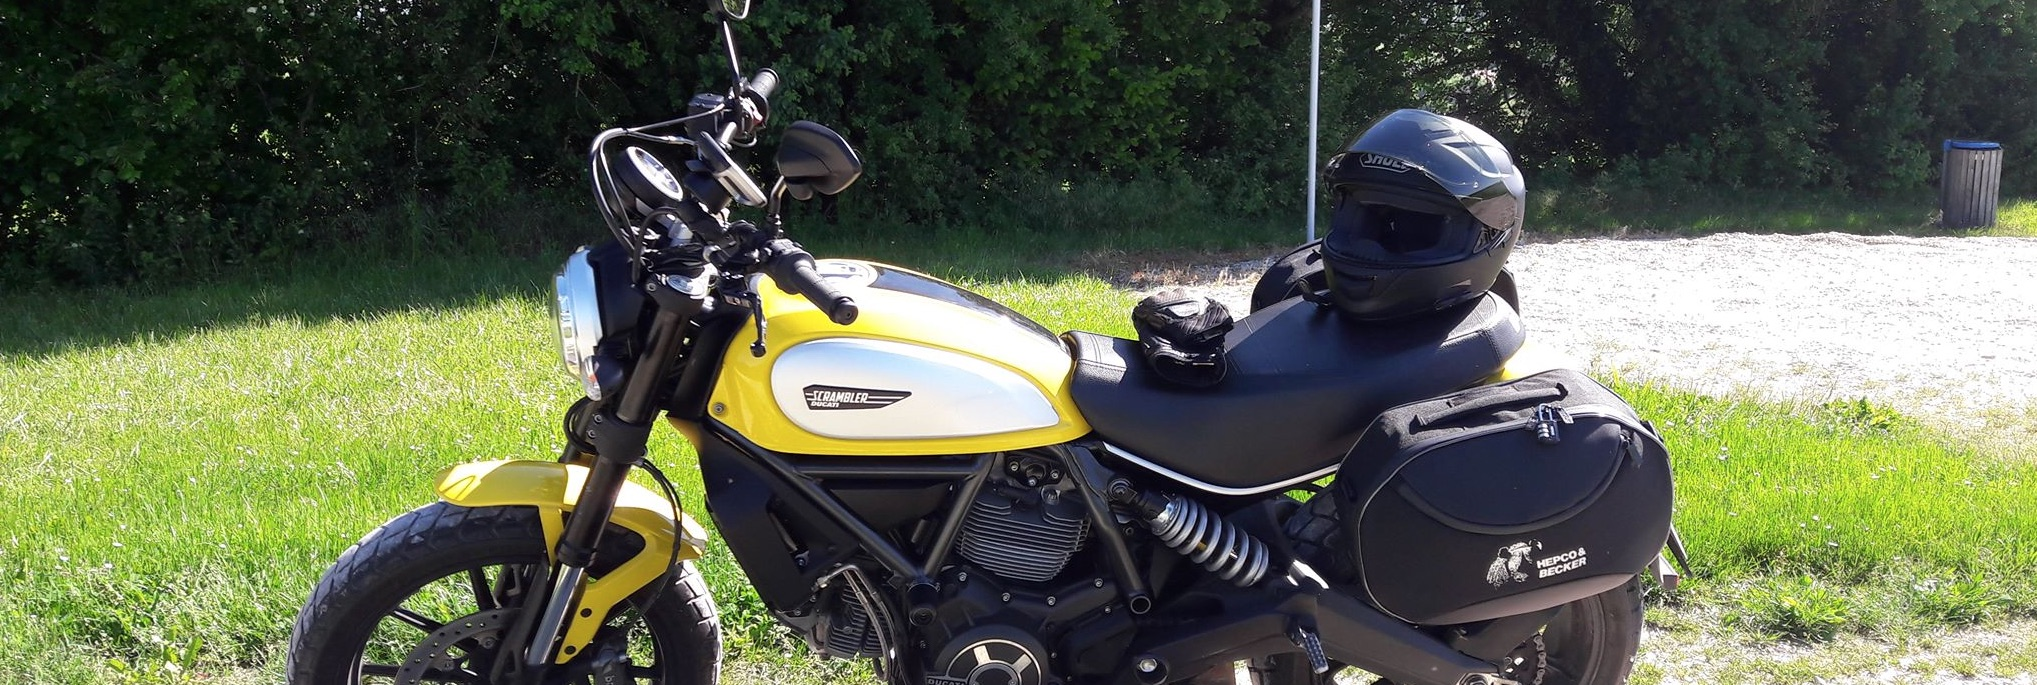 Scrambler with Hepco & Becker Cbow mount & Streebags from Motorcycle Adventure Products